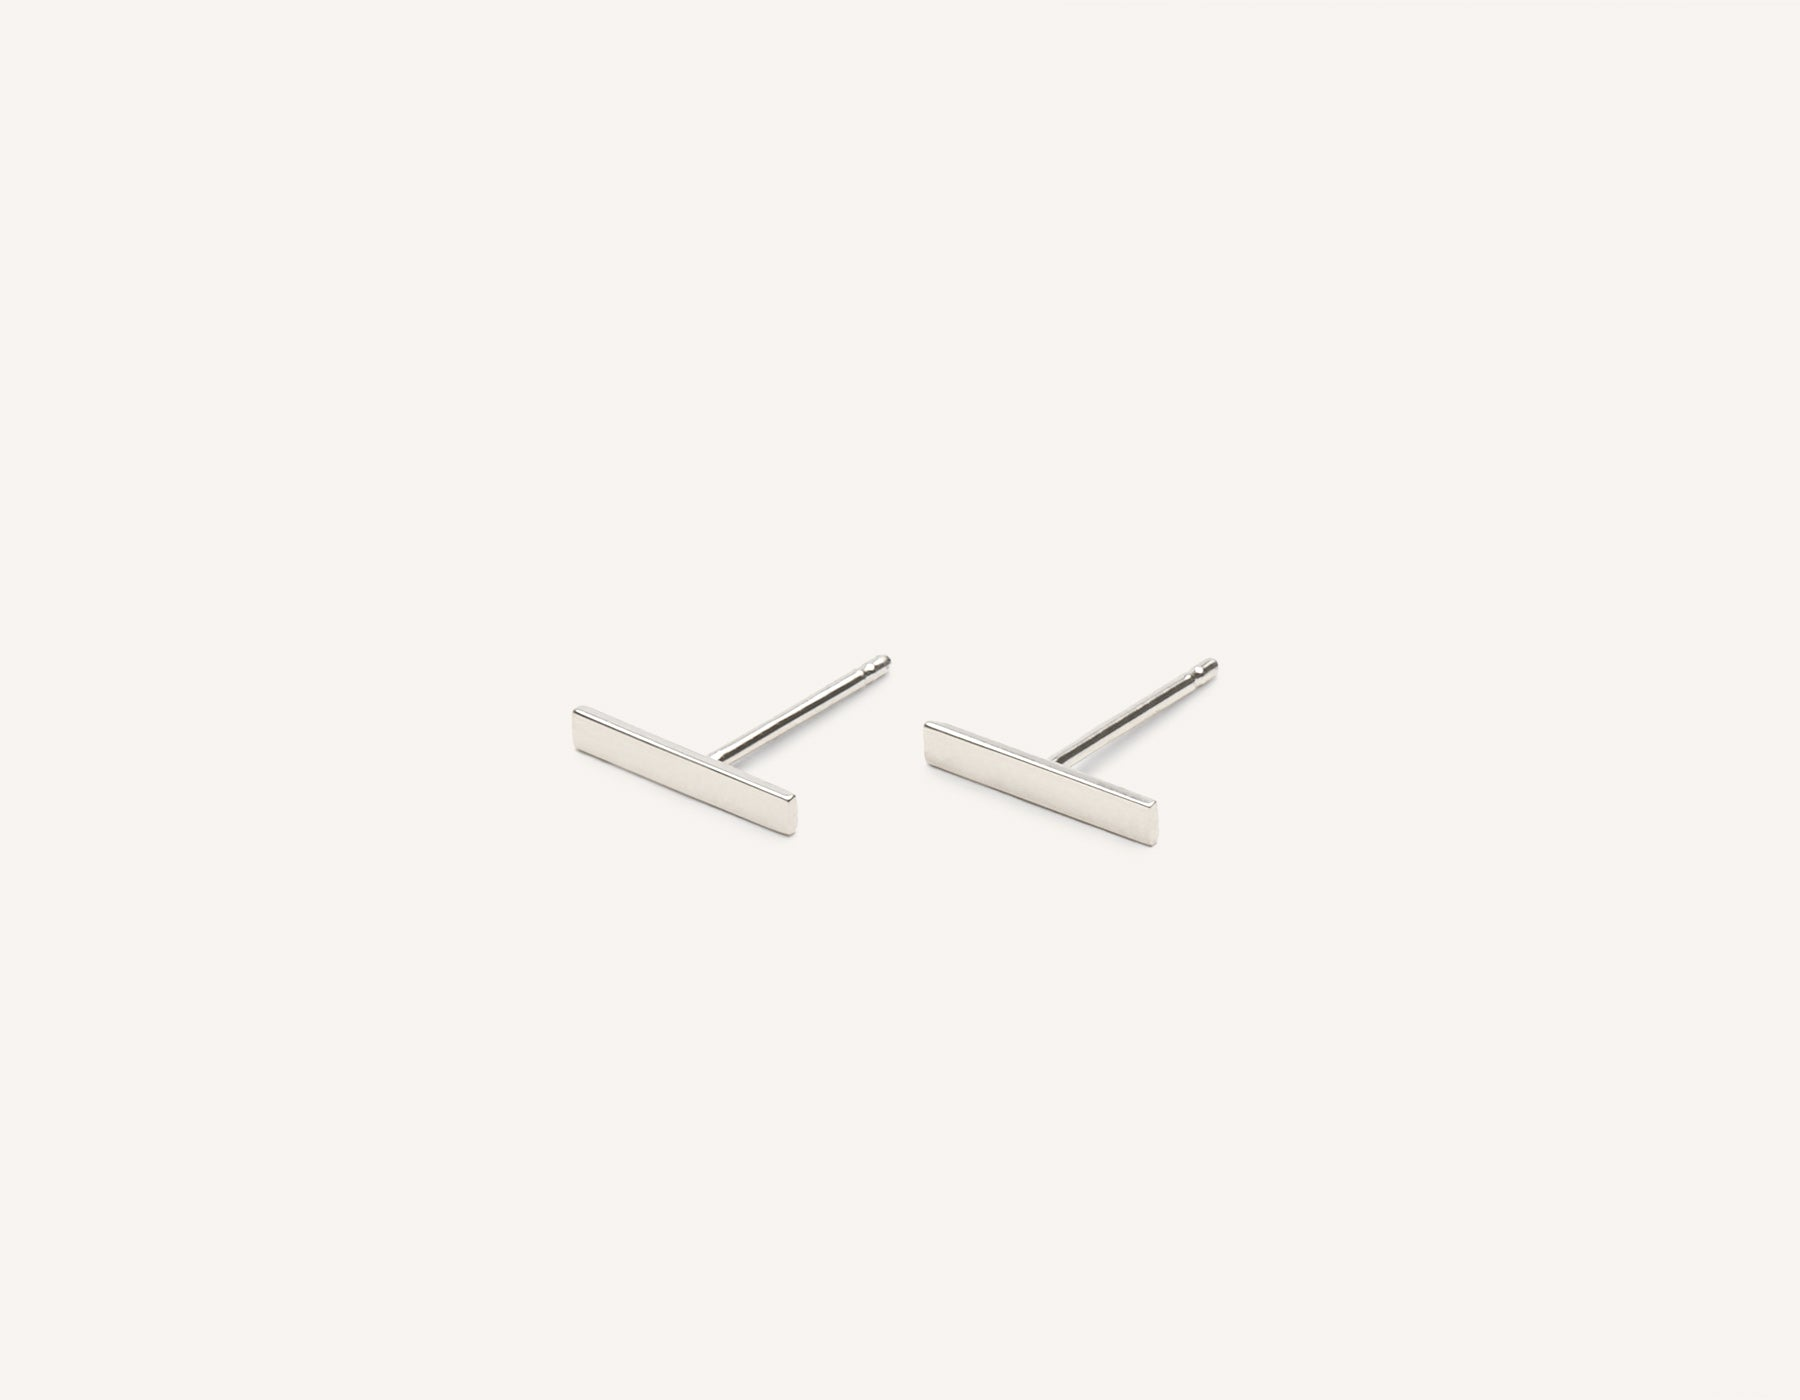 Simple classic Line Stud earrings 14k solid gold Vrai & Oro minimalist jewelry, 14K White Gold